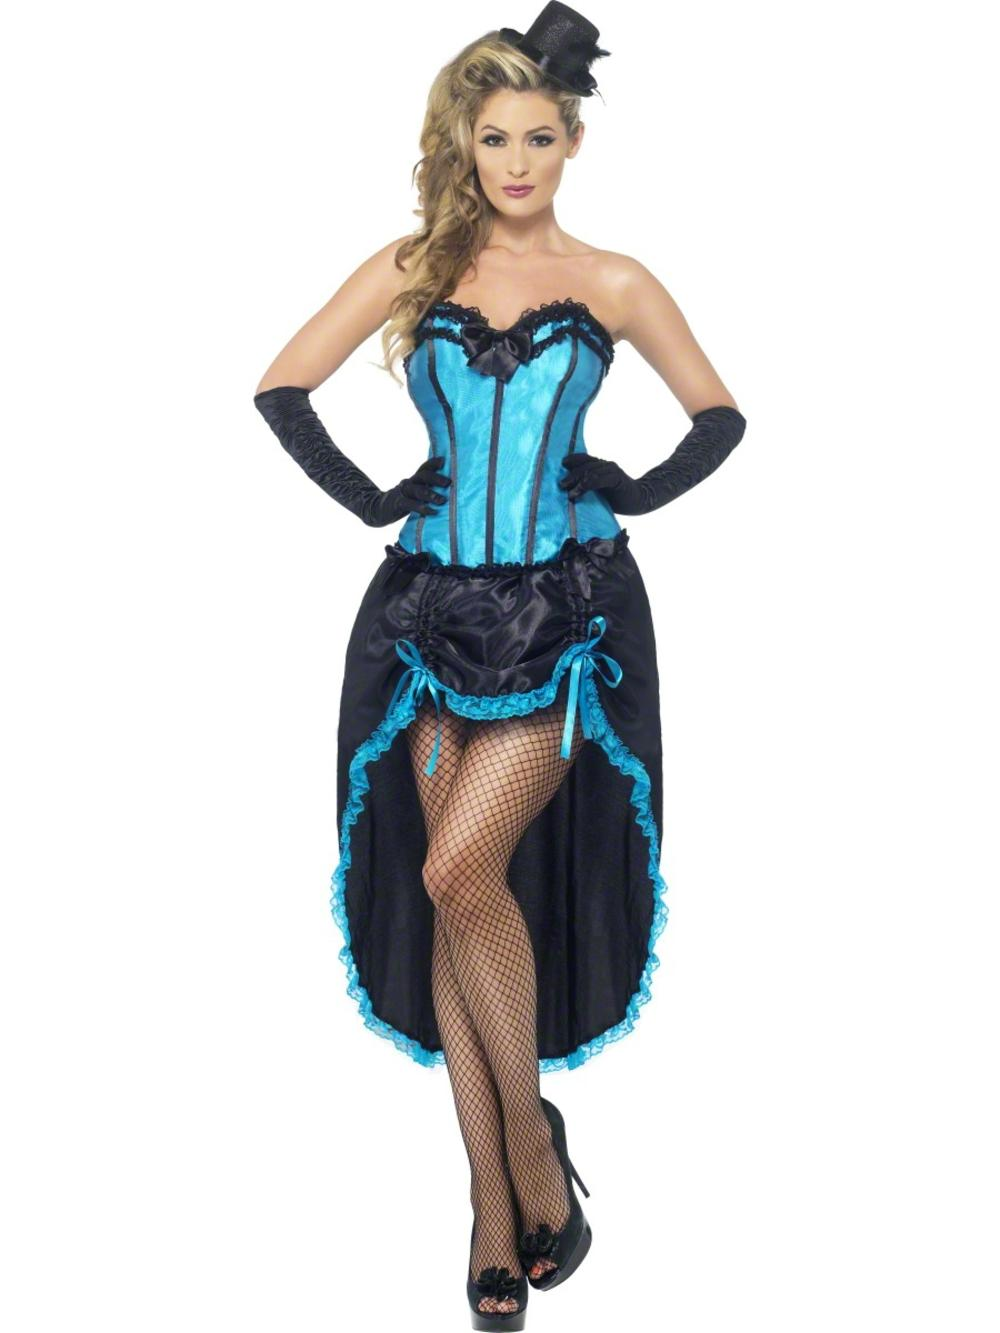 Blue Burlesque Dancer Ladies Fancy Dress Salloon Can Can Adults Costume Outfit